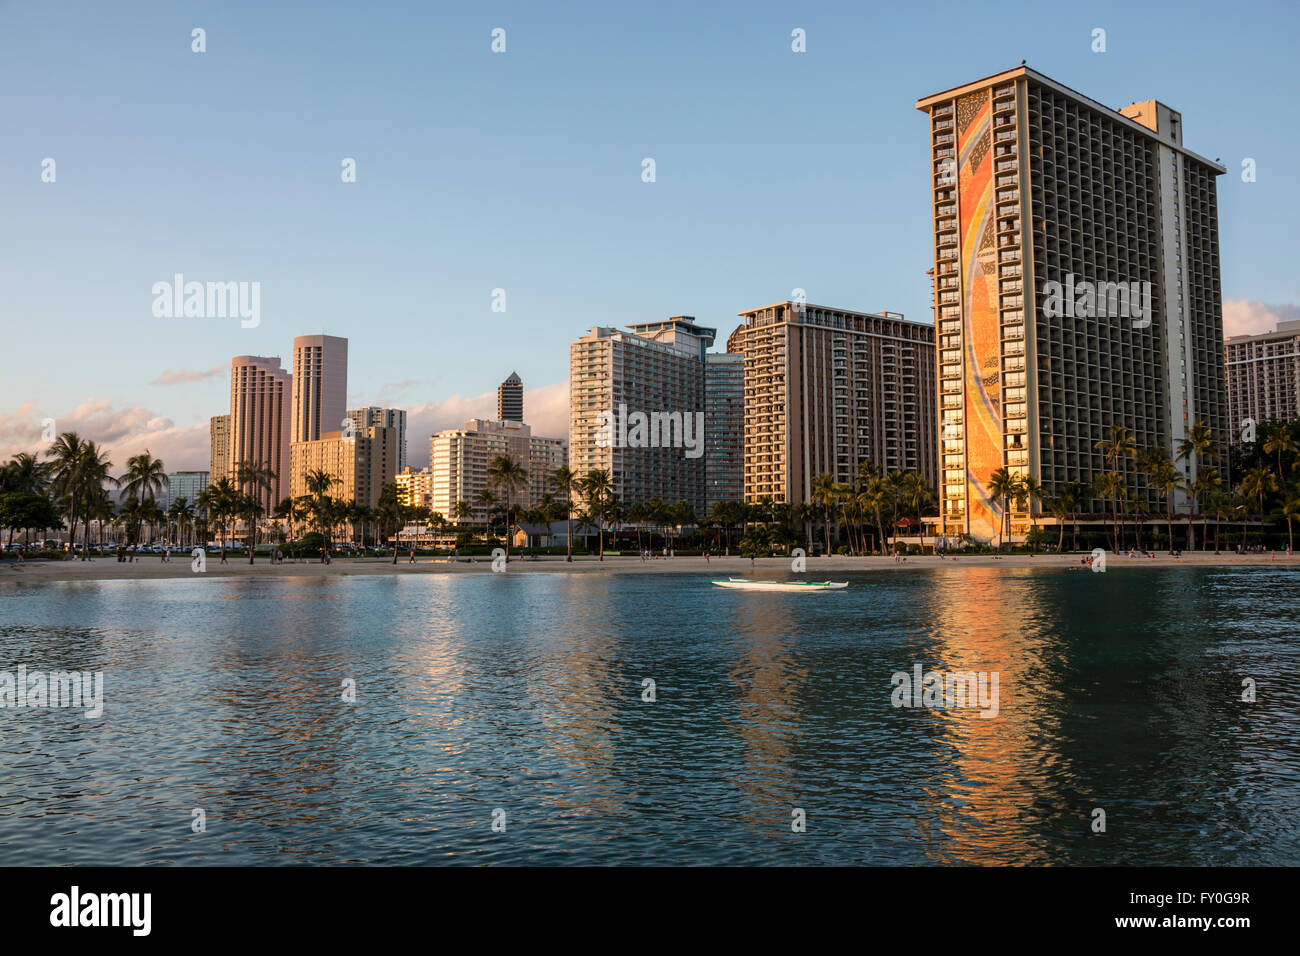 A view of the Hilton Hawaiian Village Waikiki Beach Resort and surrounding hotels at sunset. - Stock Image